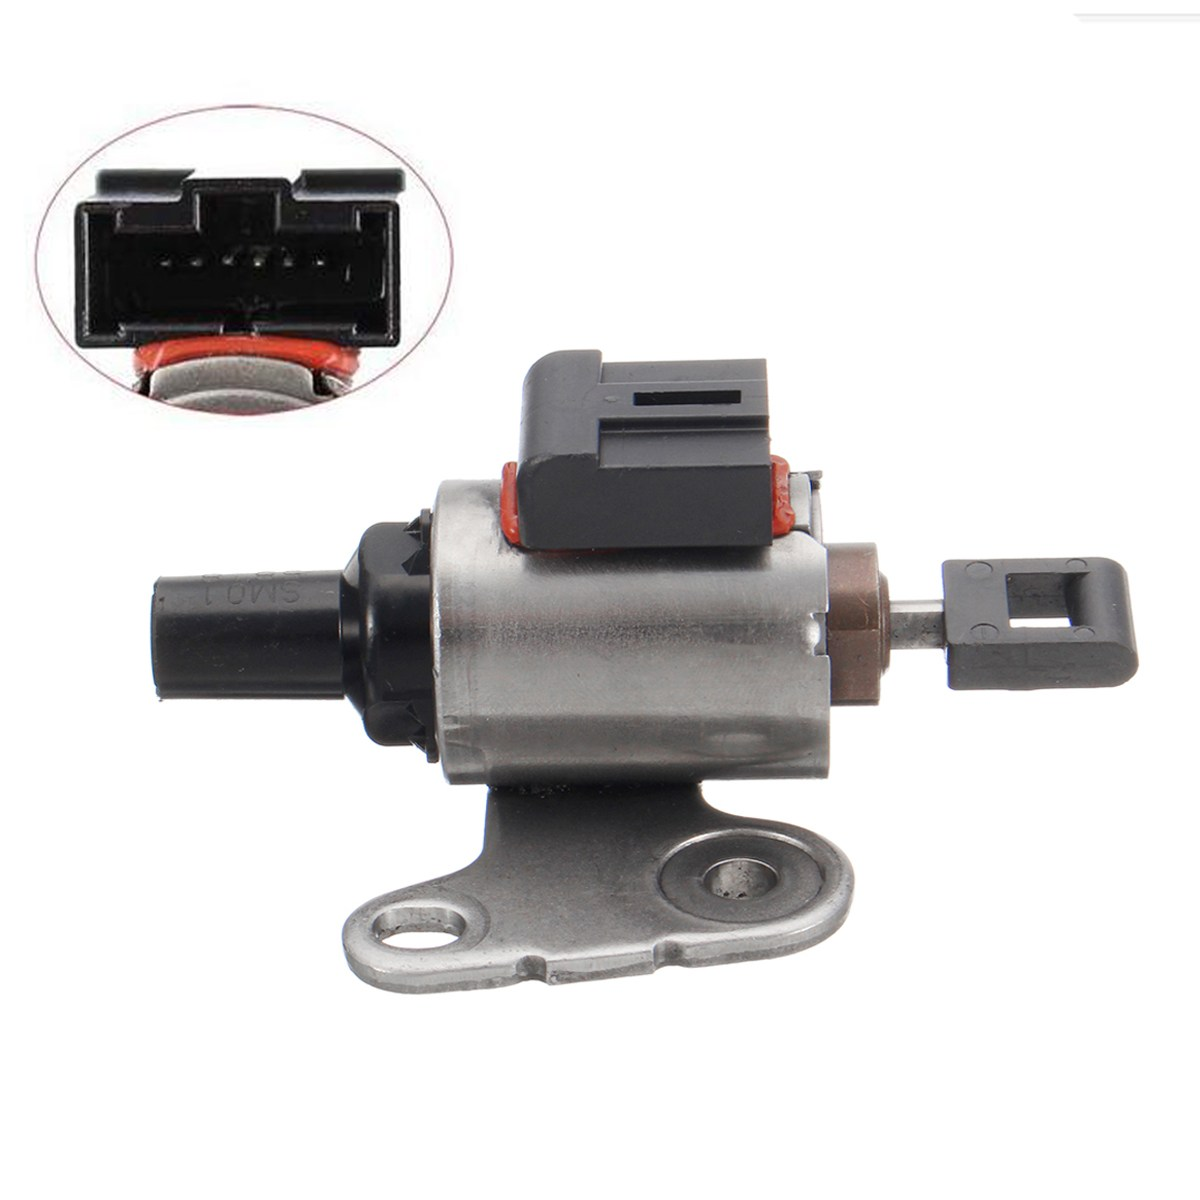 hight resolution of jf009e re0f08a b cvt transmission step motor for nissan versa tilda latio 2006